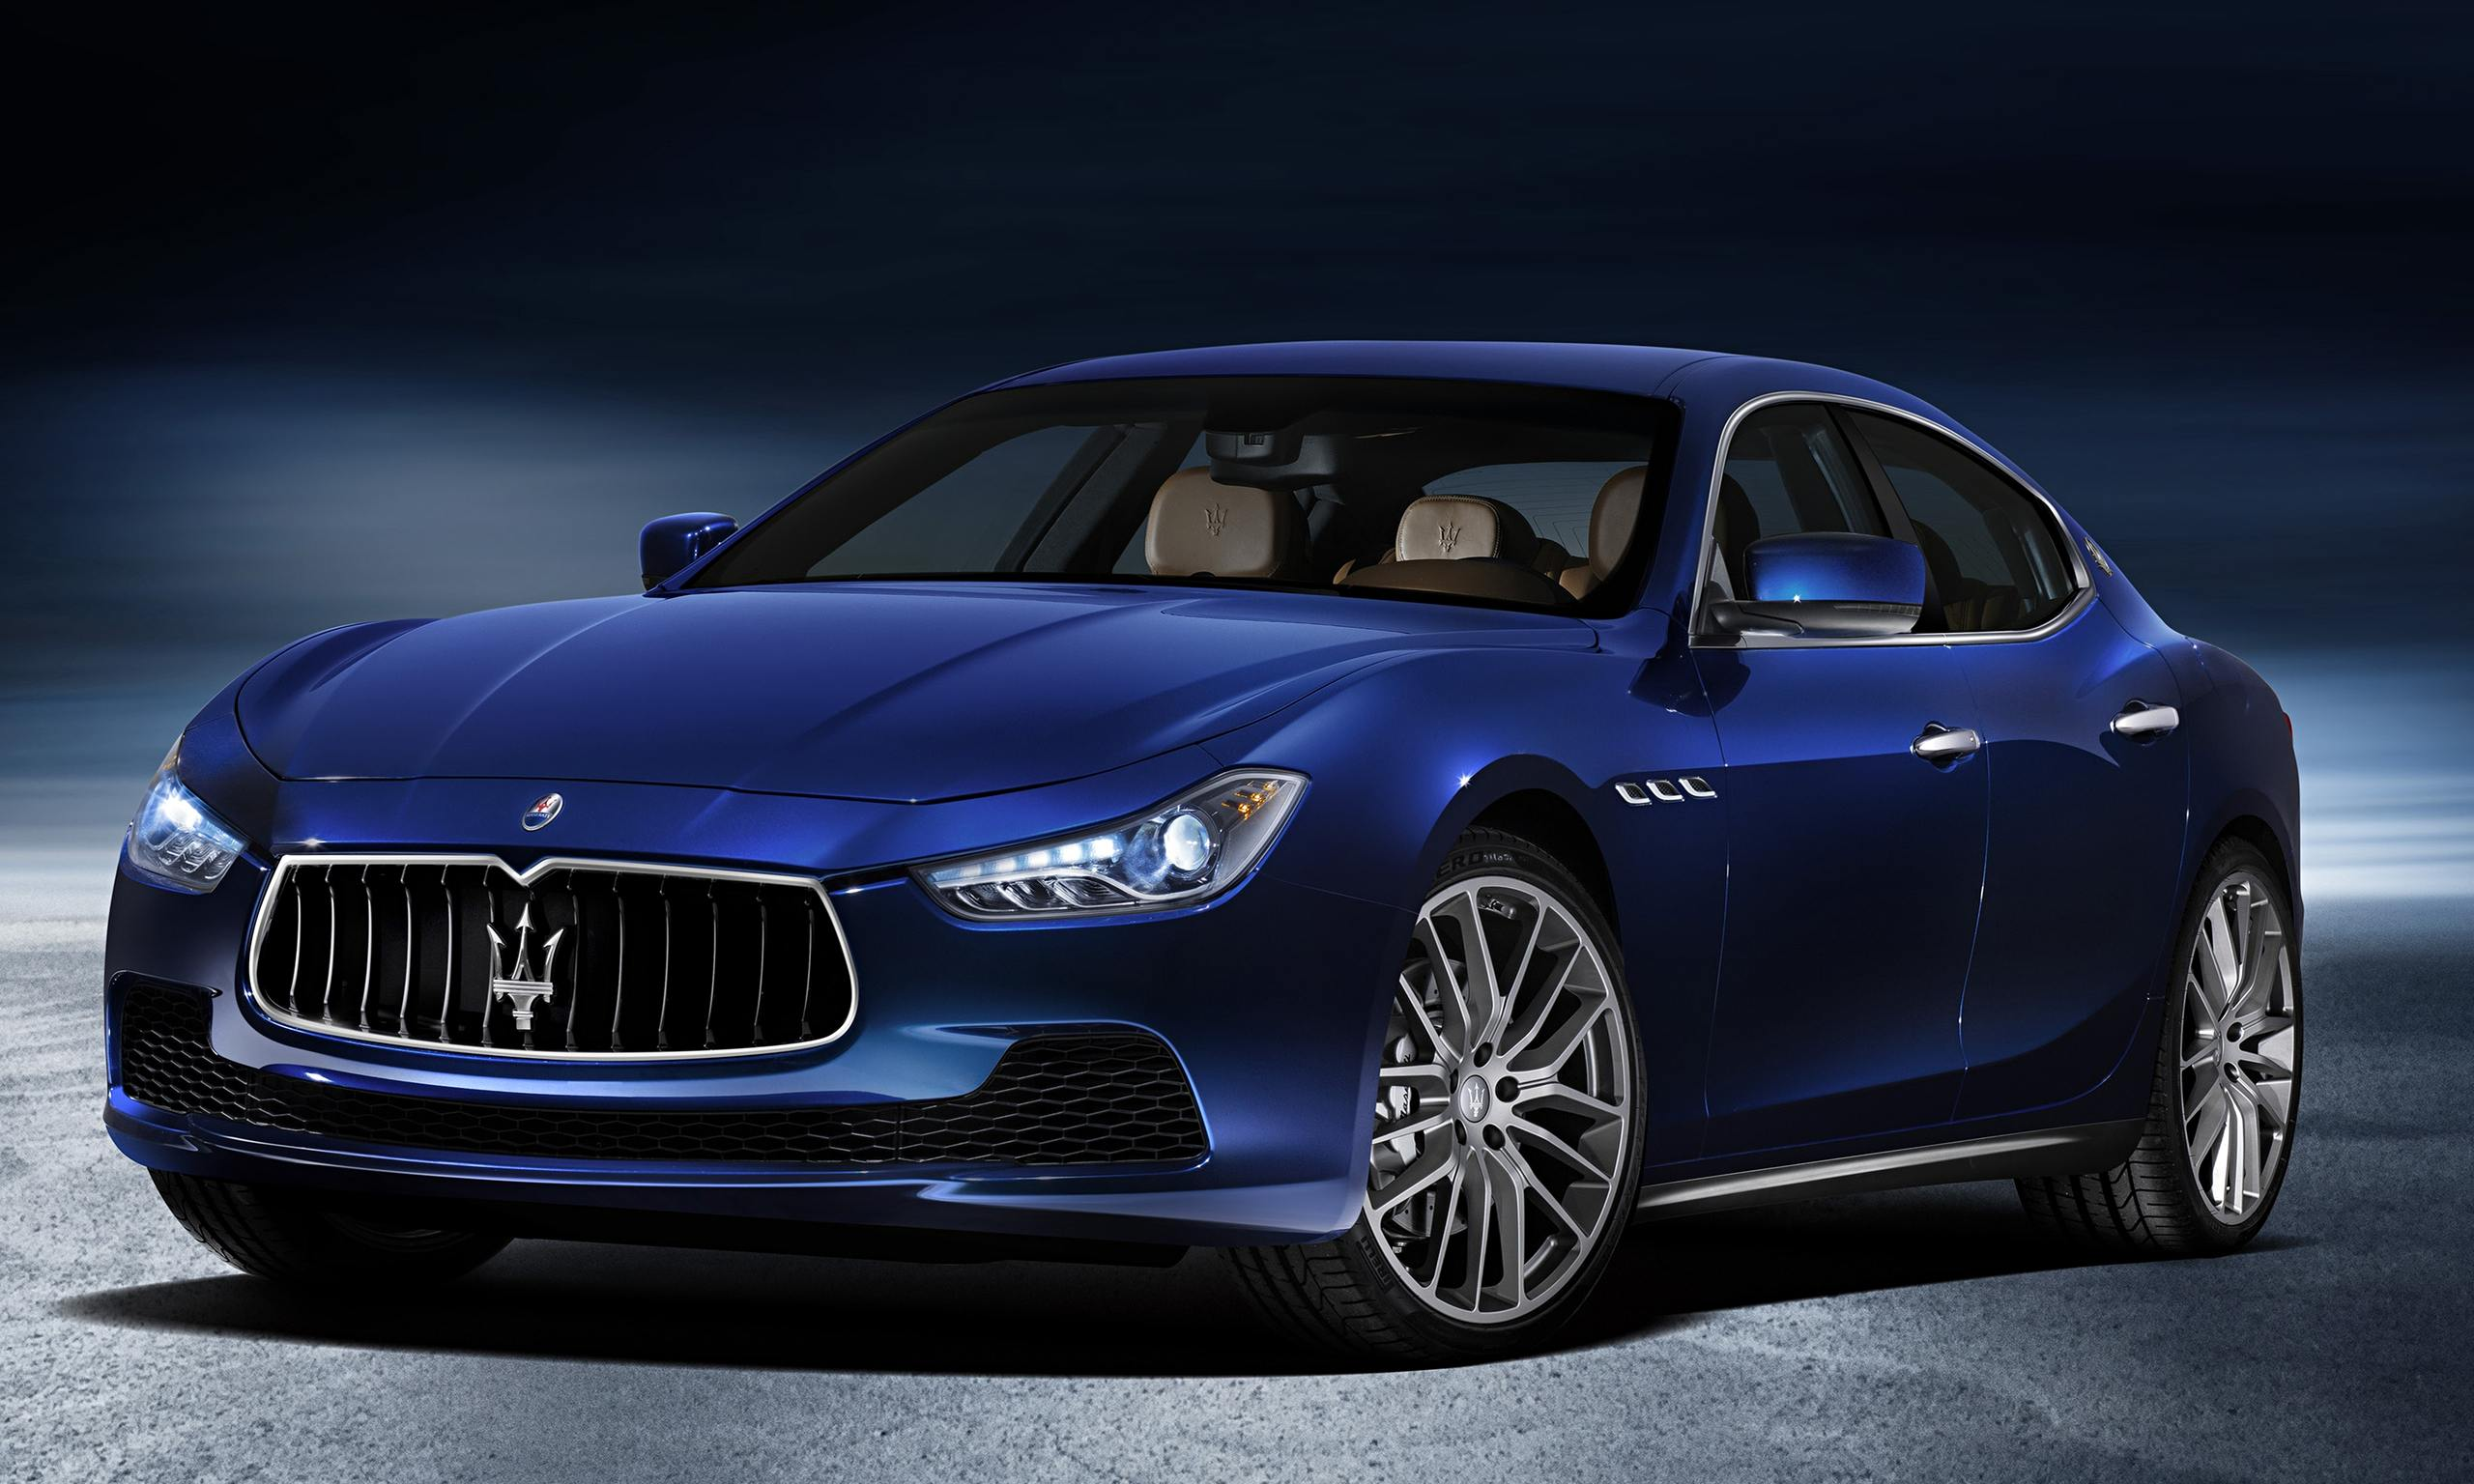 maserati ghibli car review martin love technology the guardian. Black Bedroom Furniture Sets. Home Design Ideas